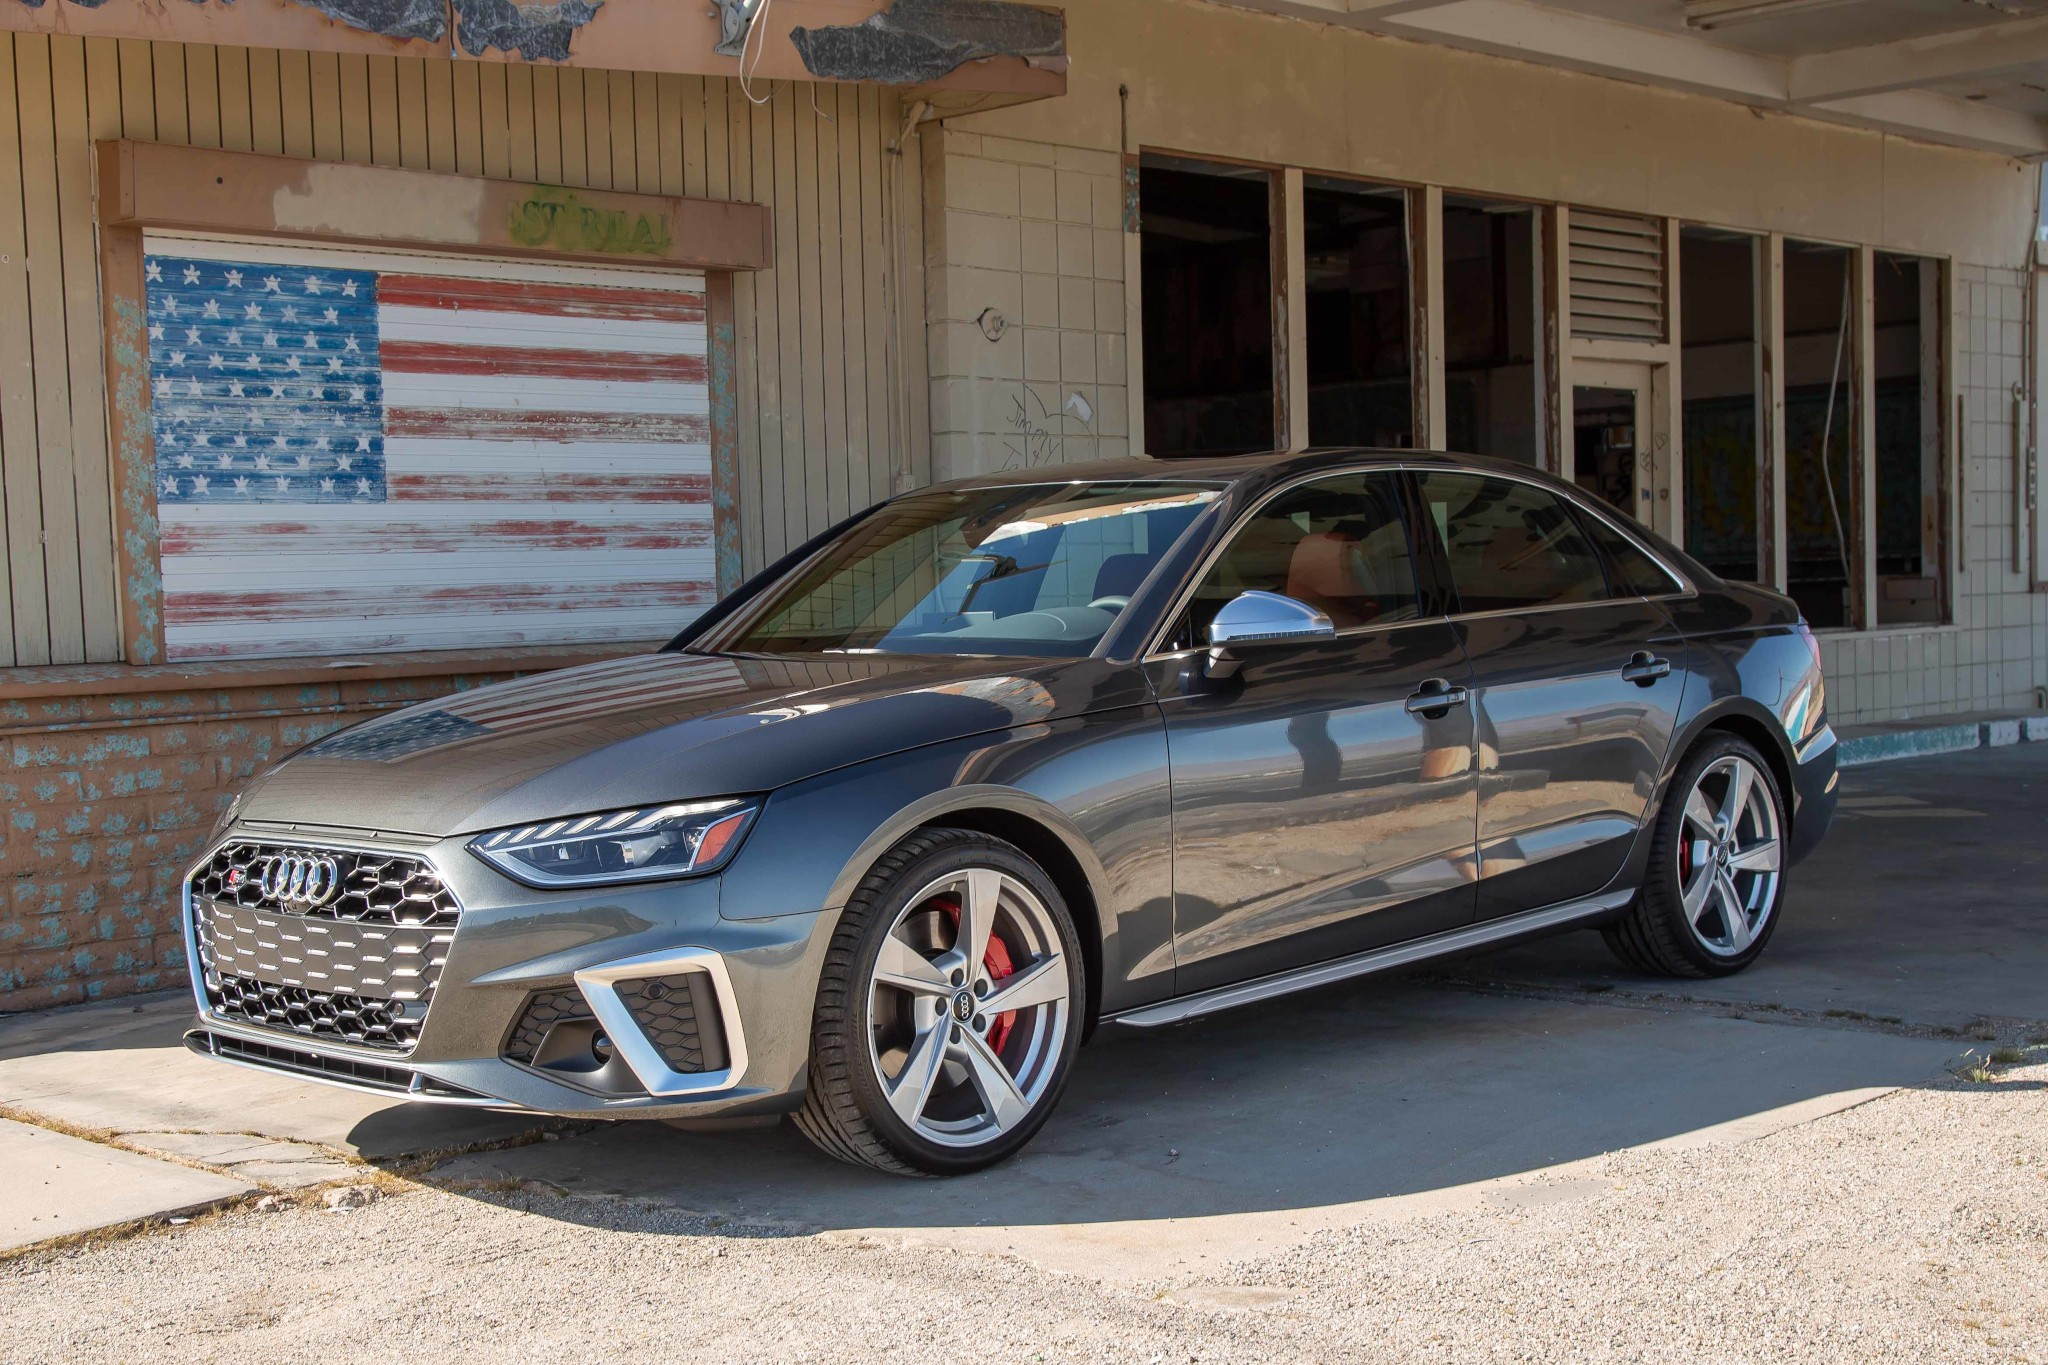 2020 Audi S4 Review: Lost in the Shuffle or Ready to Hustle?